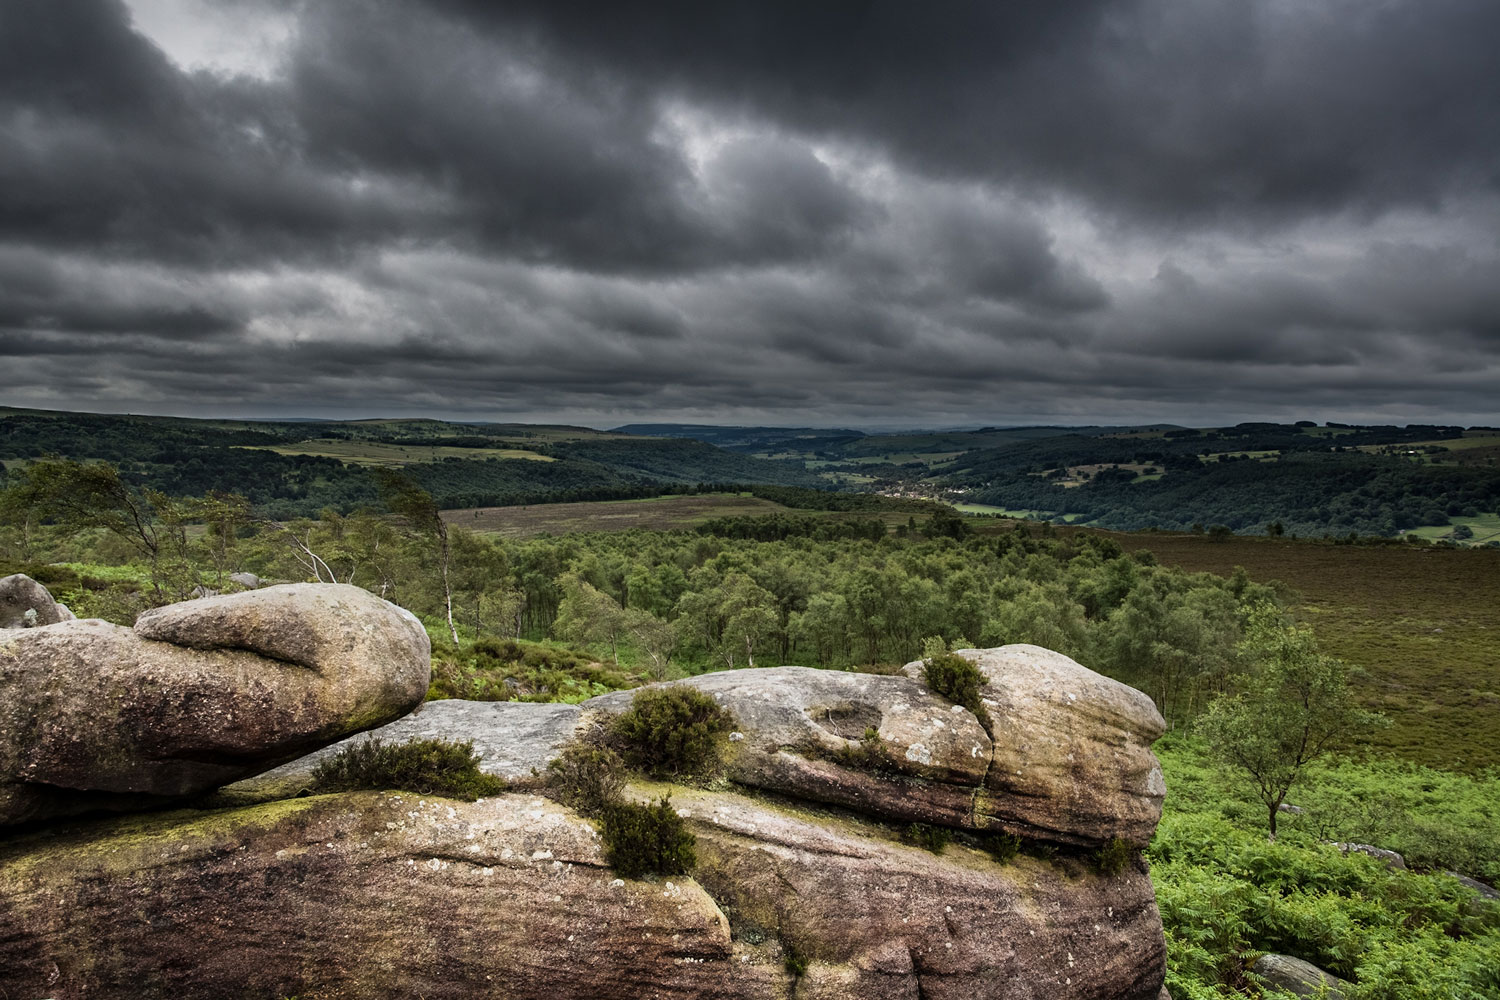 Derbyshire Peak District - a general view